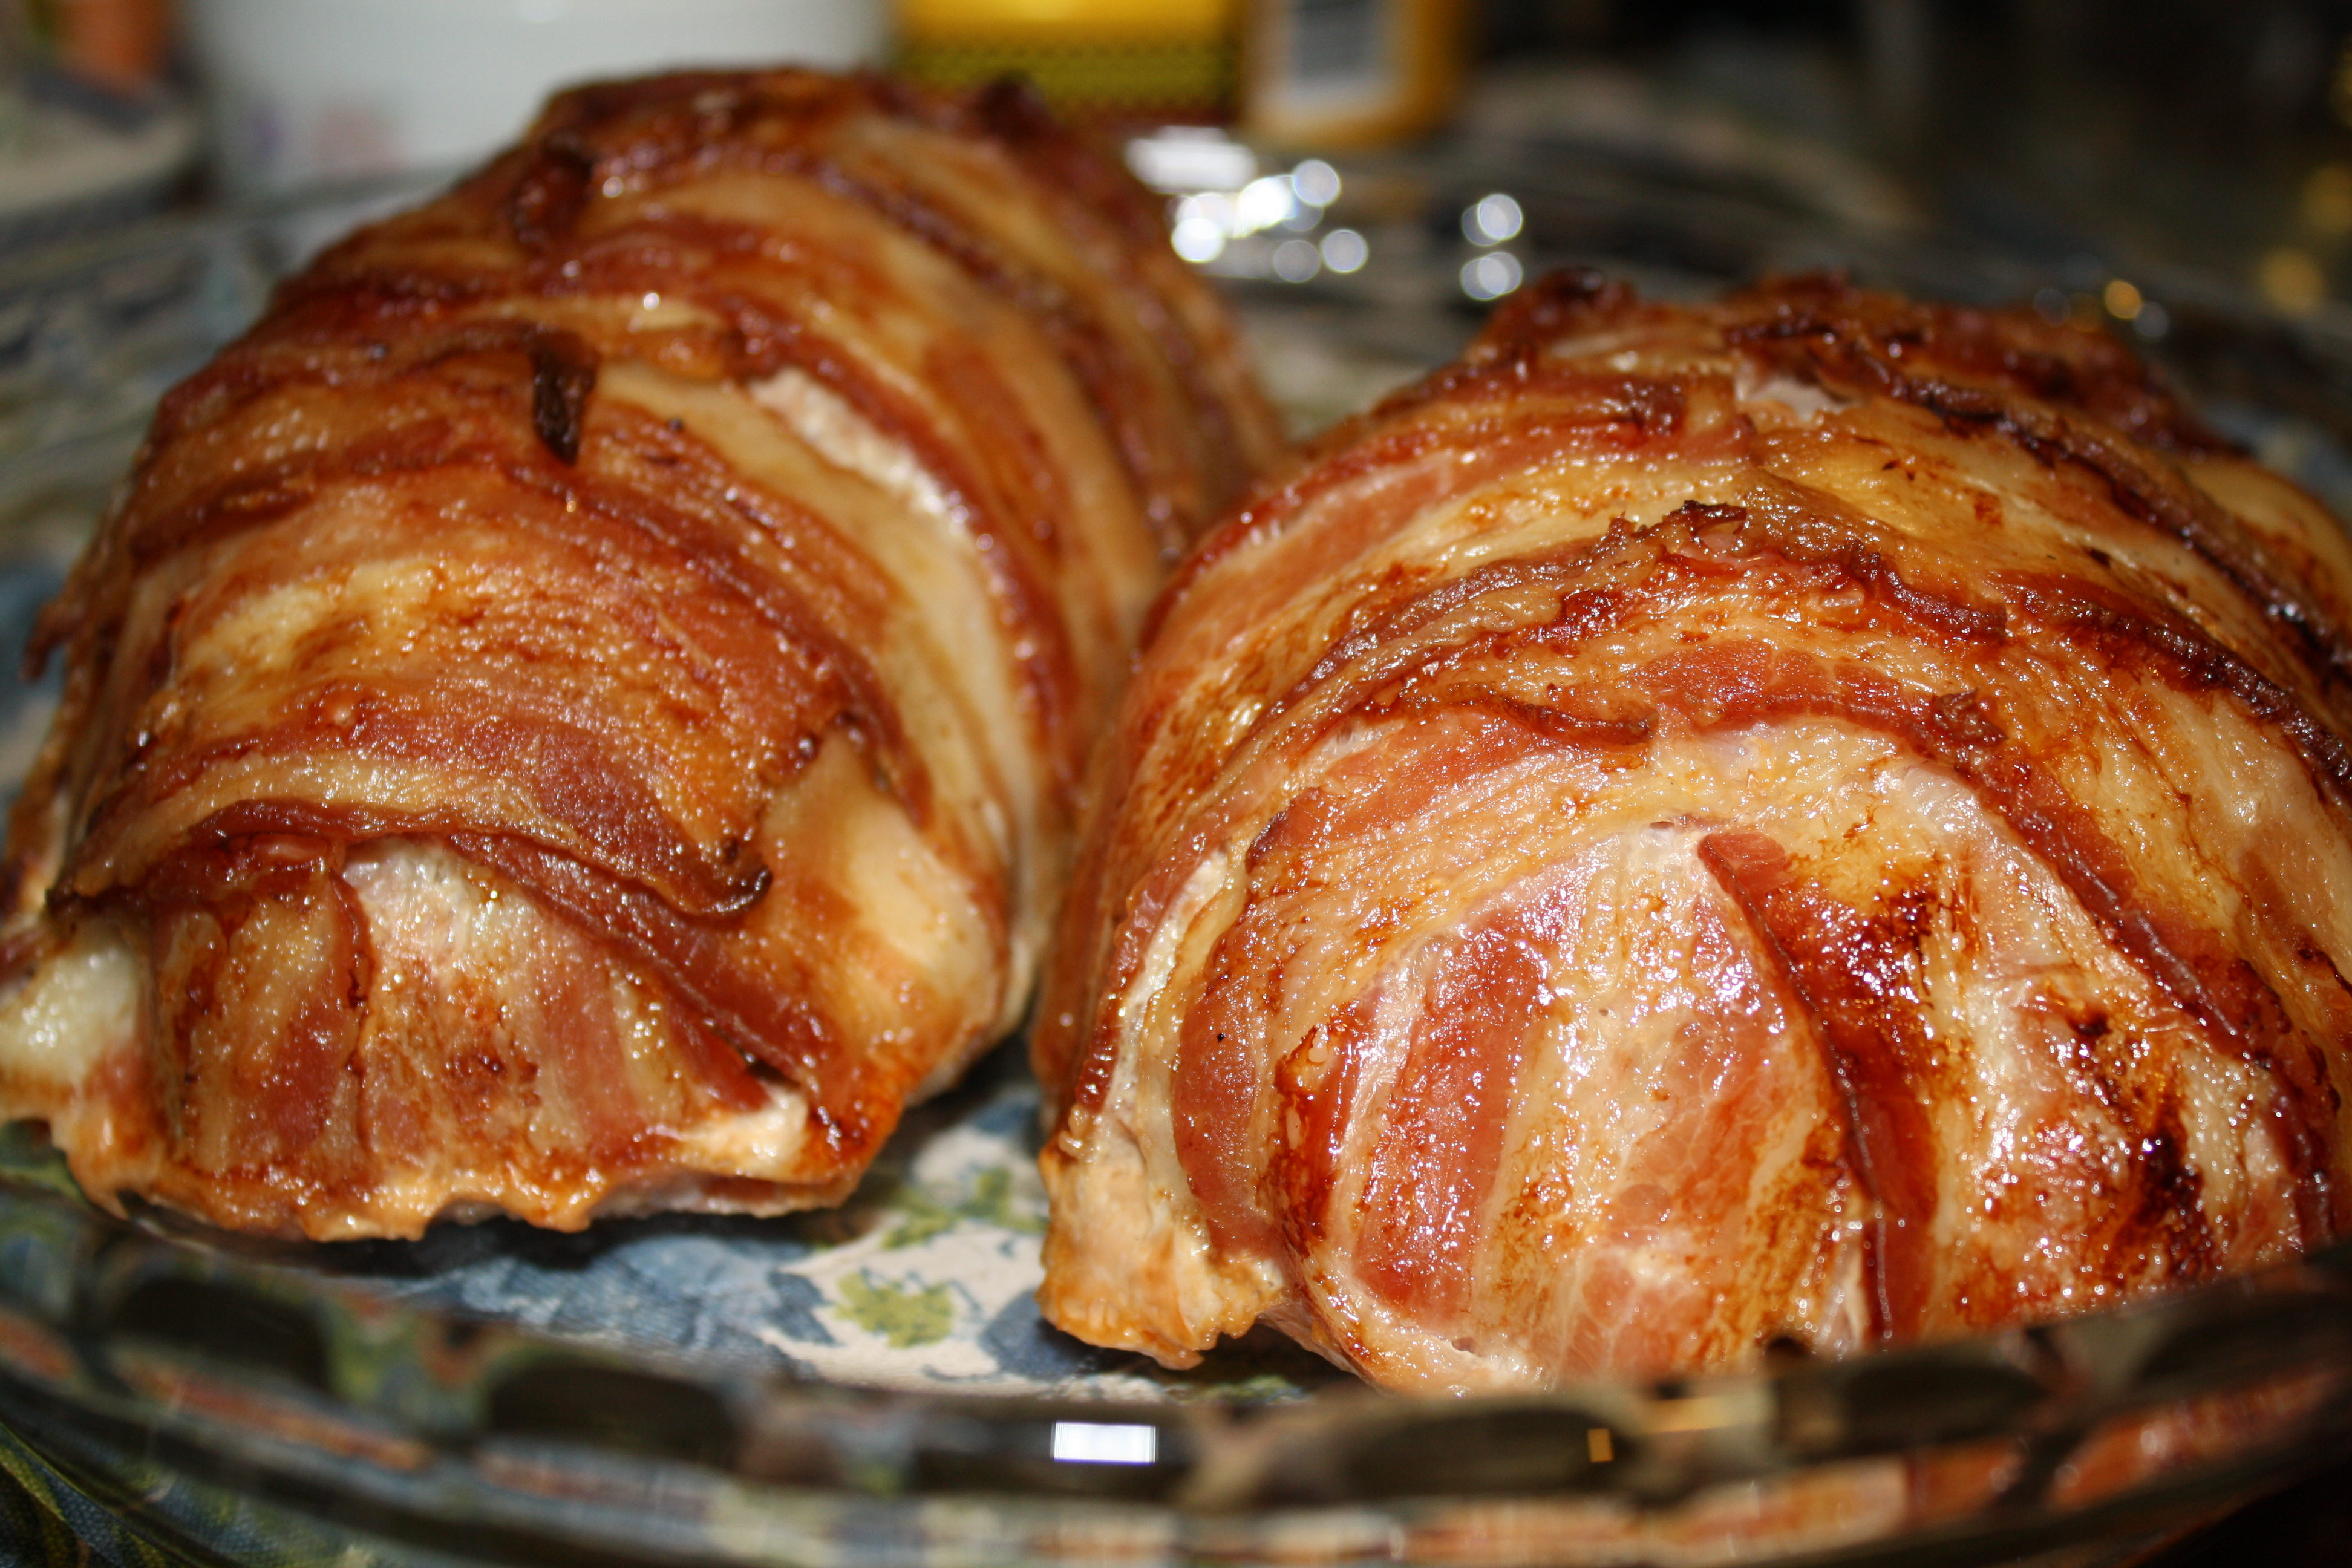 The bacon wrapped meatloaf was delicious! The bacon added just the ...